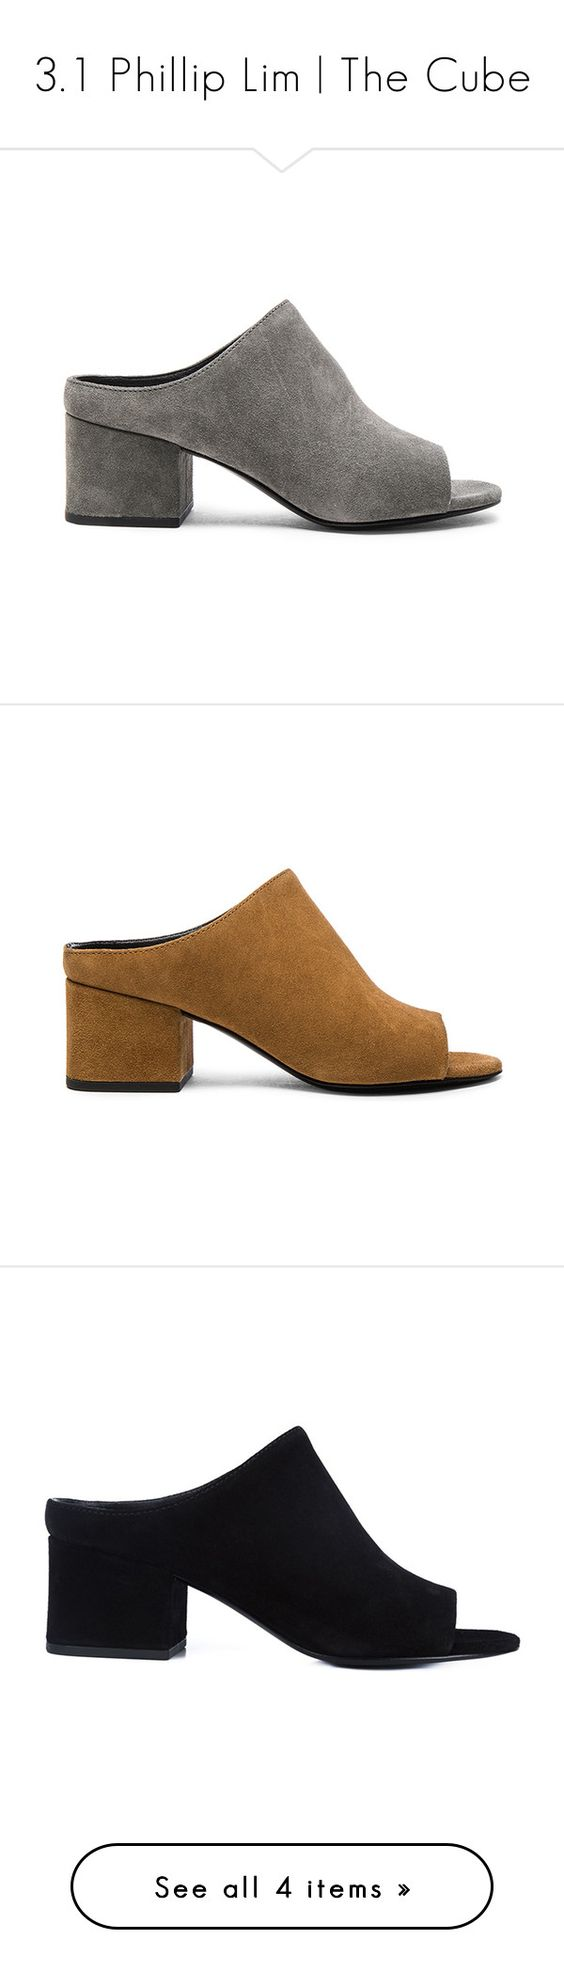 3.1 Phillip Lim | The Cube by blueandcream on Polyvore featuring women's fashion, shoes, accessories, women, brown slip on shoes, 3.1 phillip lim shoes, slip-on shoes, mid-heel shoes, brown mules and open-toe mules